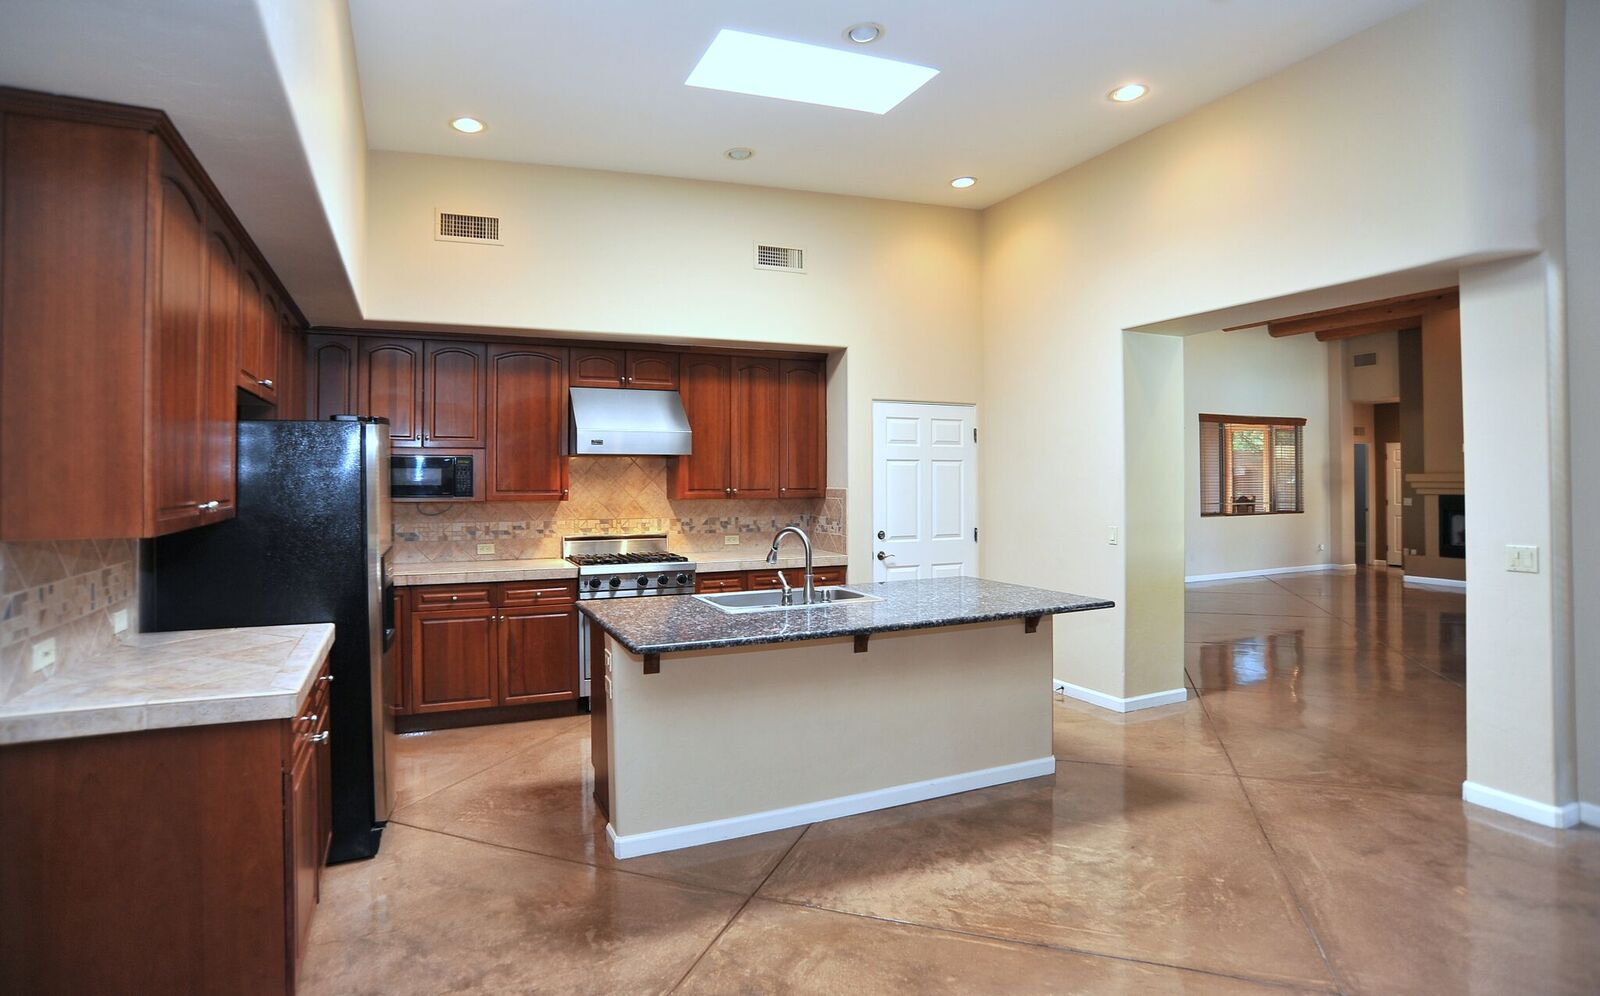 old ft lowell home for sale tucson land realtytucson